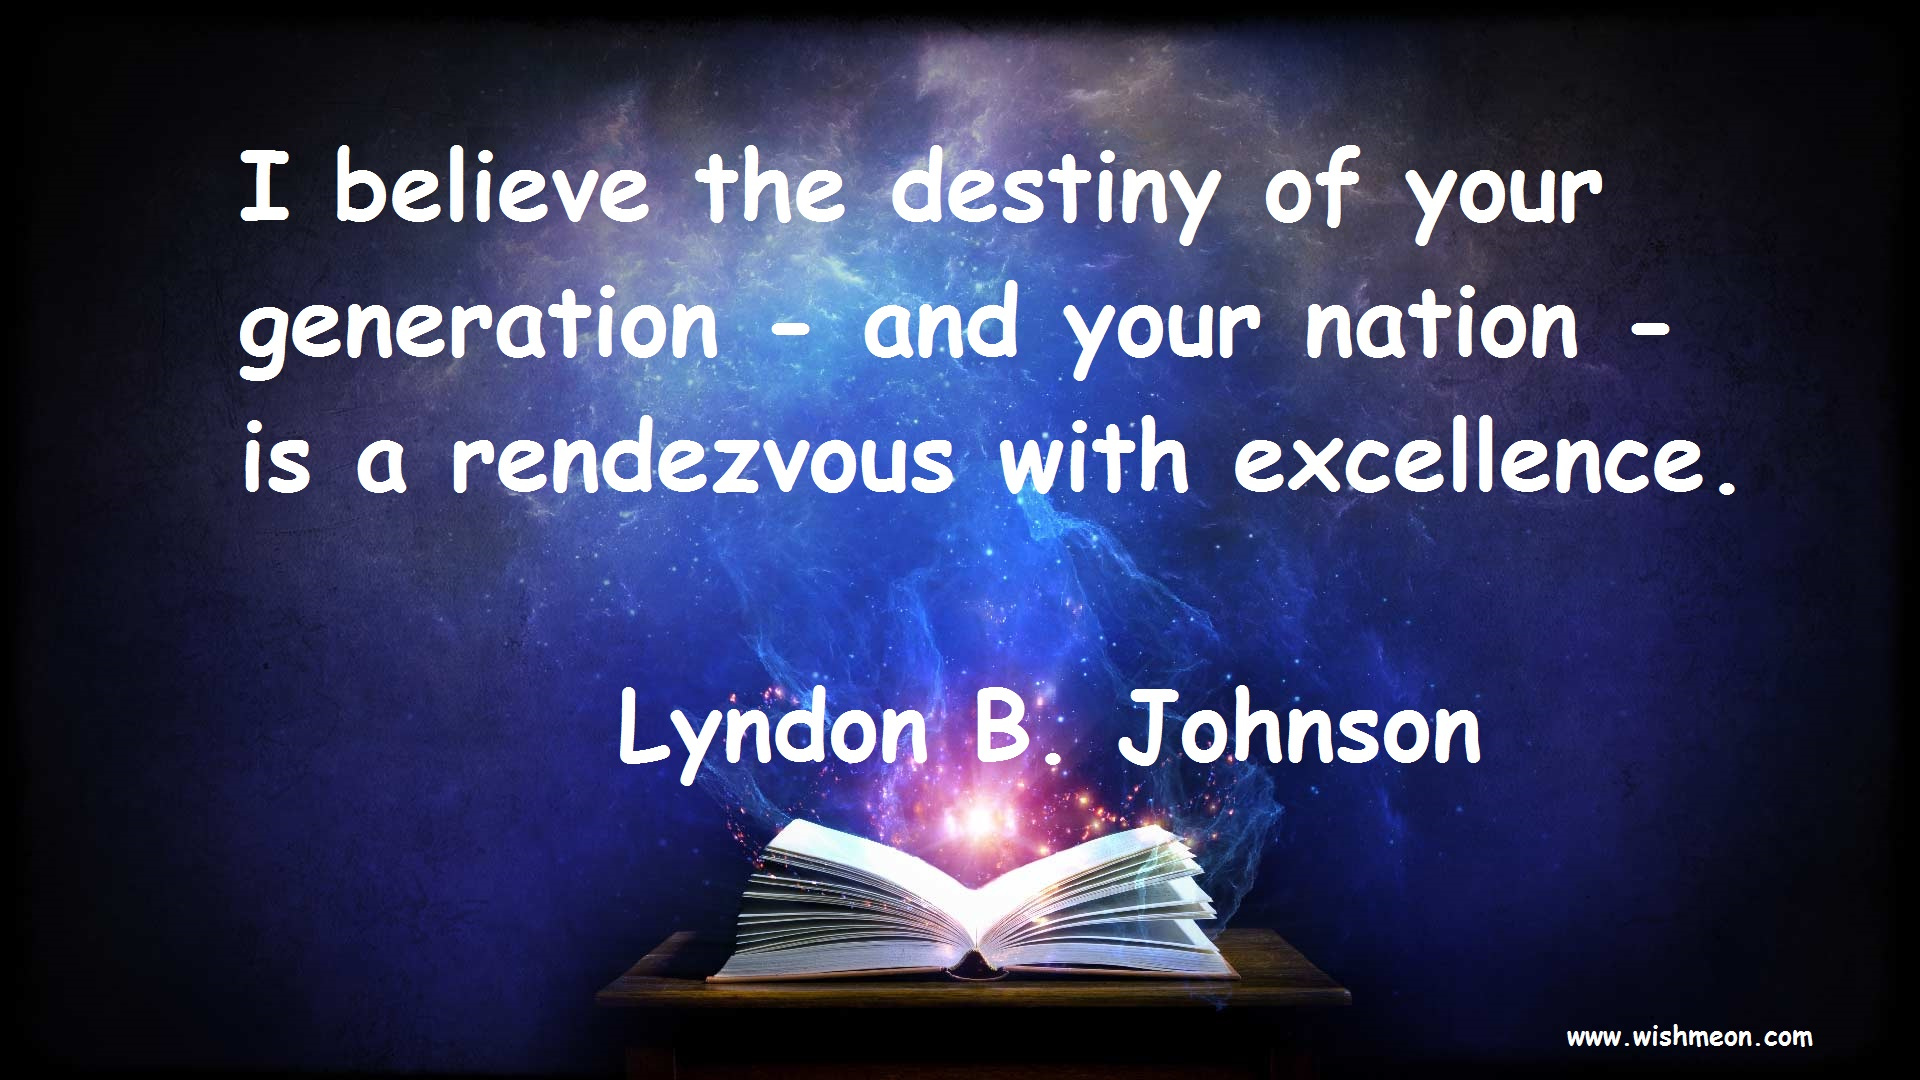 I believe the destiny of your generation and your nation is a rendezvous with excellence. Lyndon B. Johnson